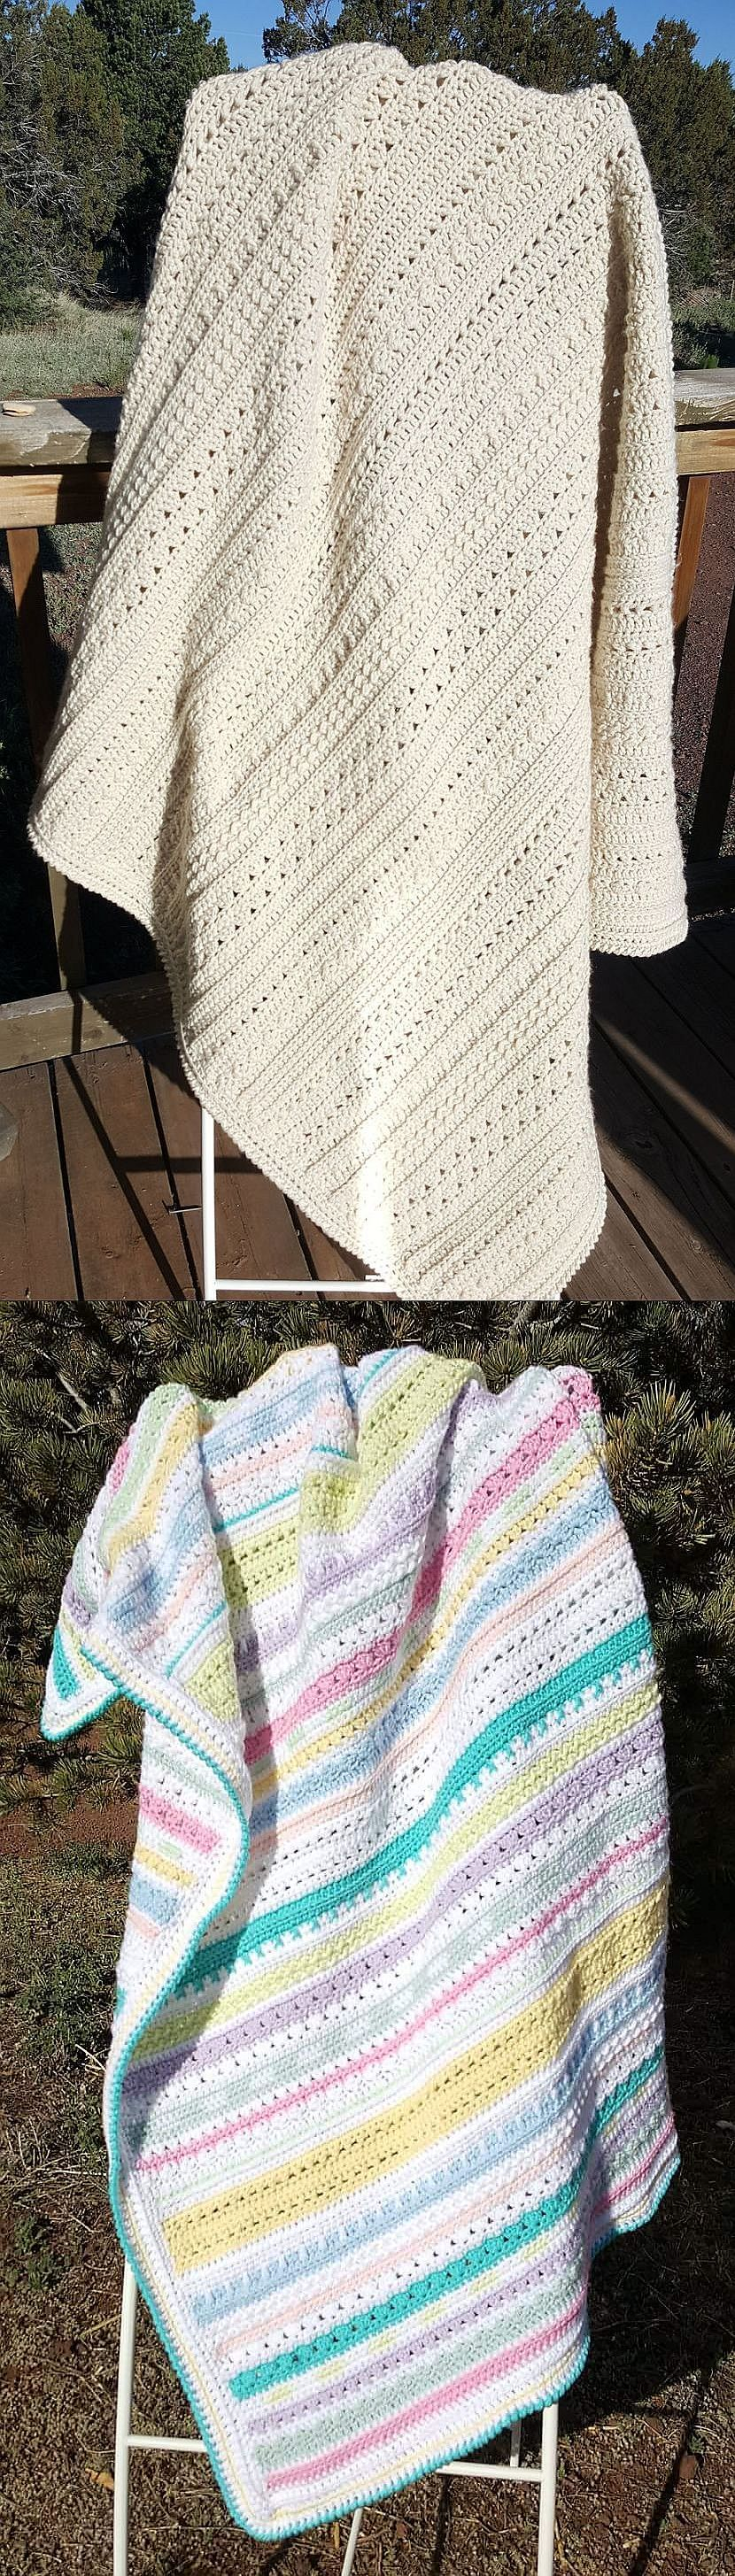 12 Step Sampler Blanket pattern by We-R-Soto Design | Frazada